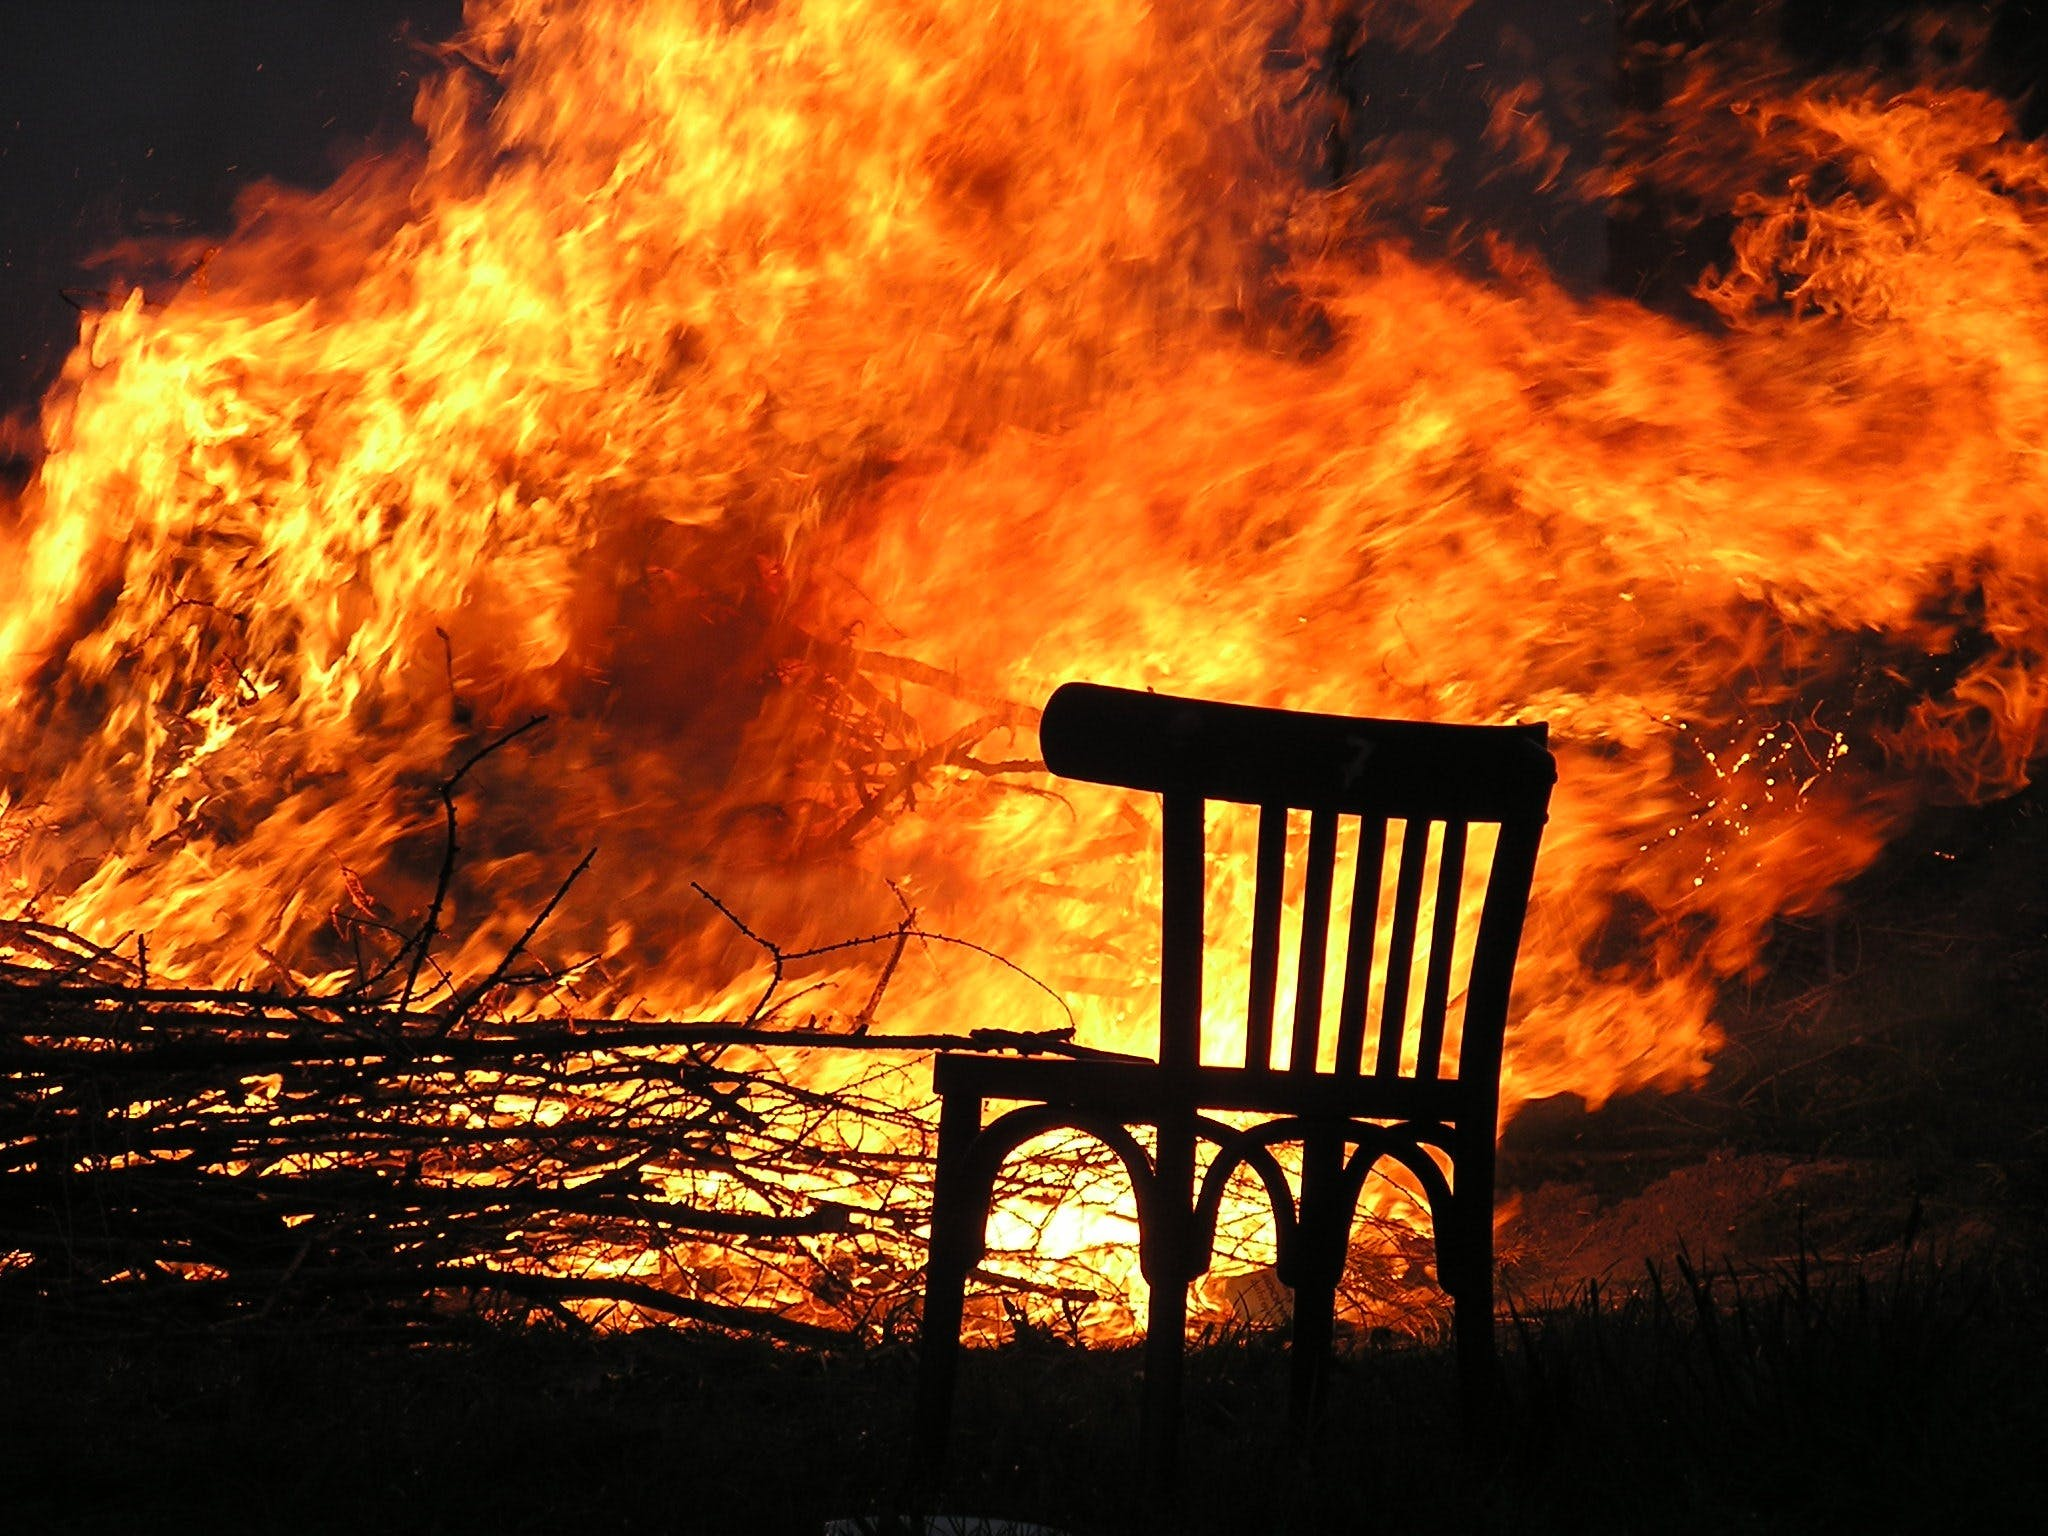 Free stock photo of fire, chair, flame, wood fire